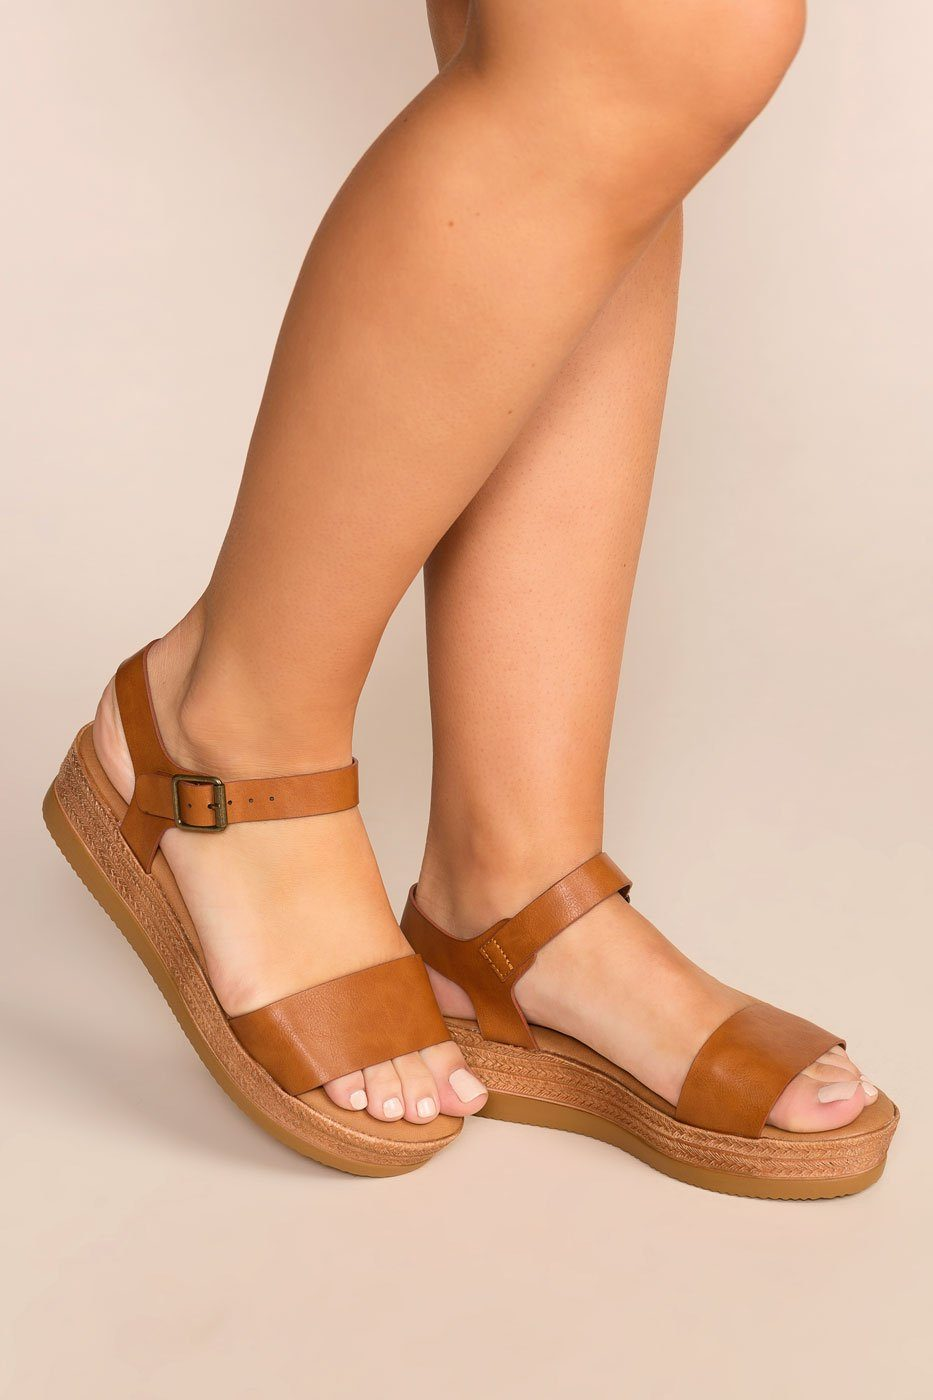 Breather A Platform Sandals Tan Take vbf76gYy